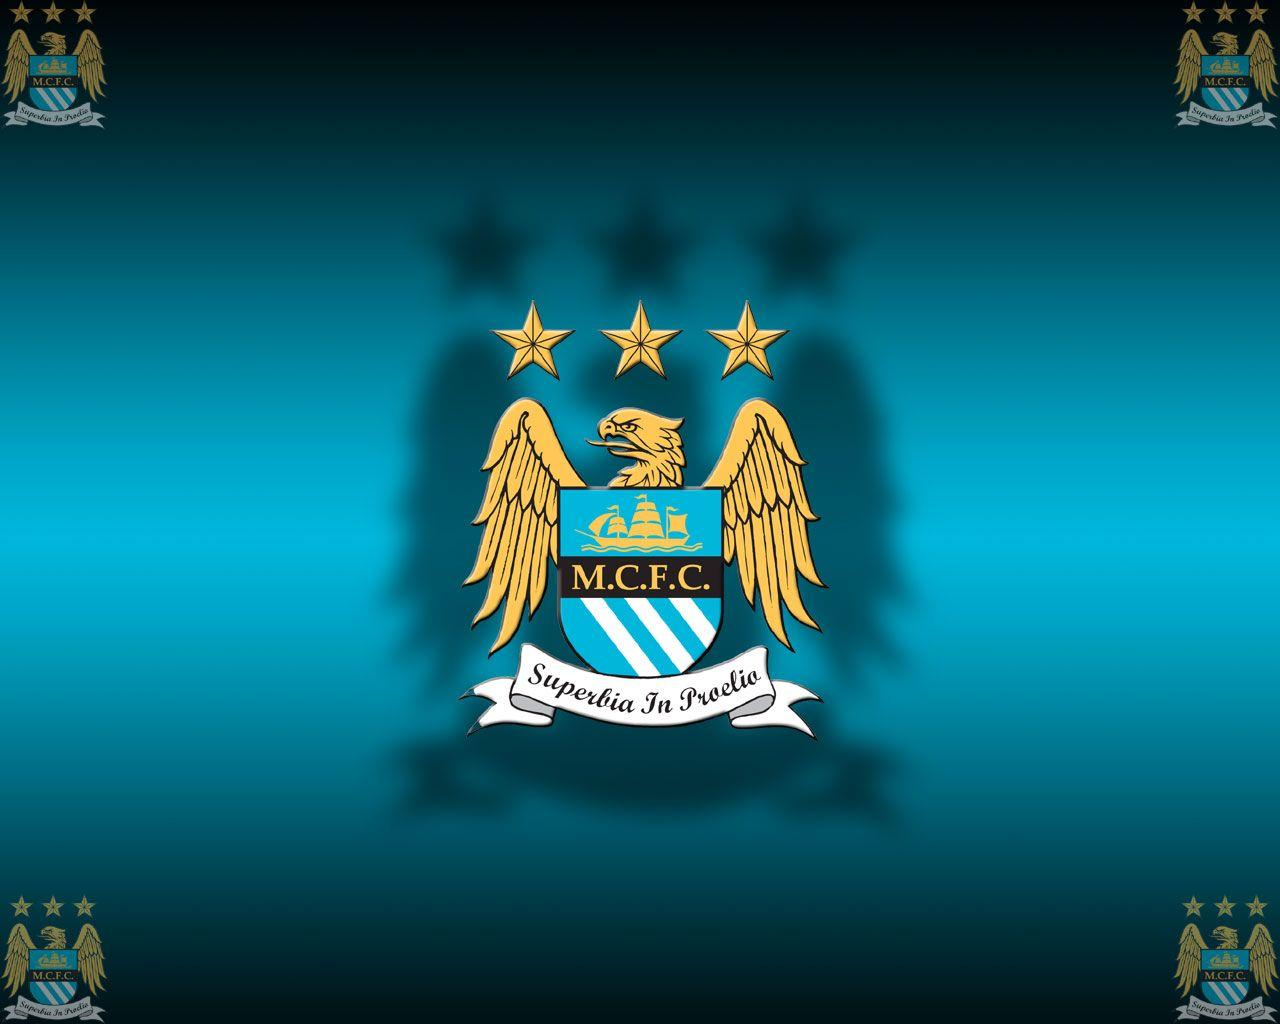 Manchester City Fc Wallpaper: Manchester City F.C. Wallpapers